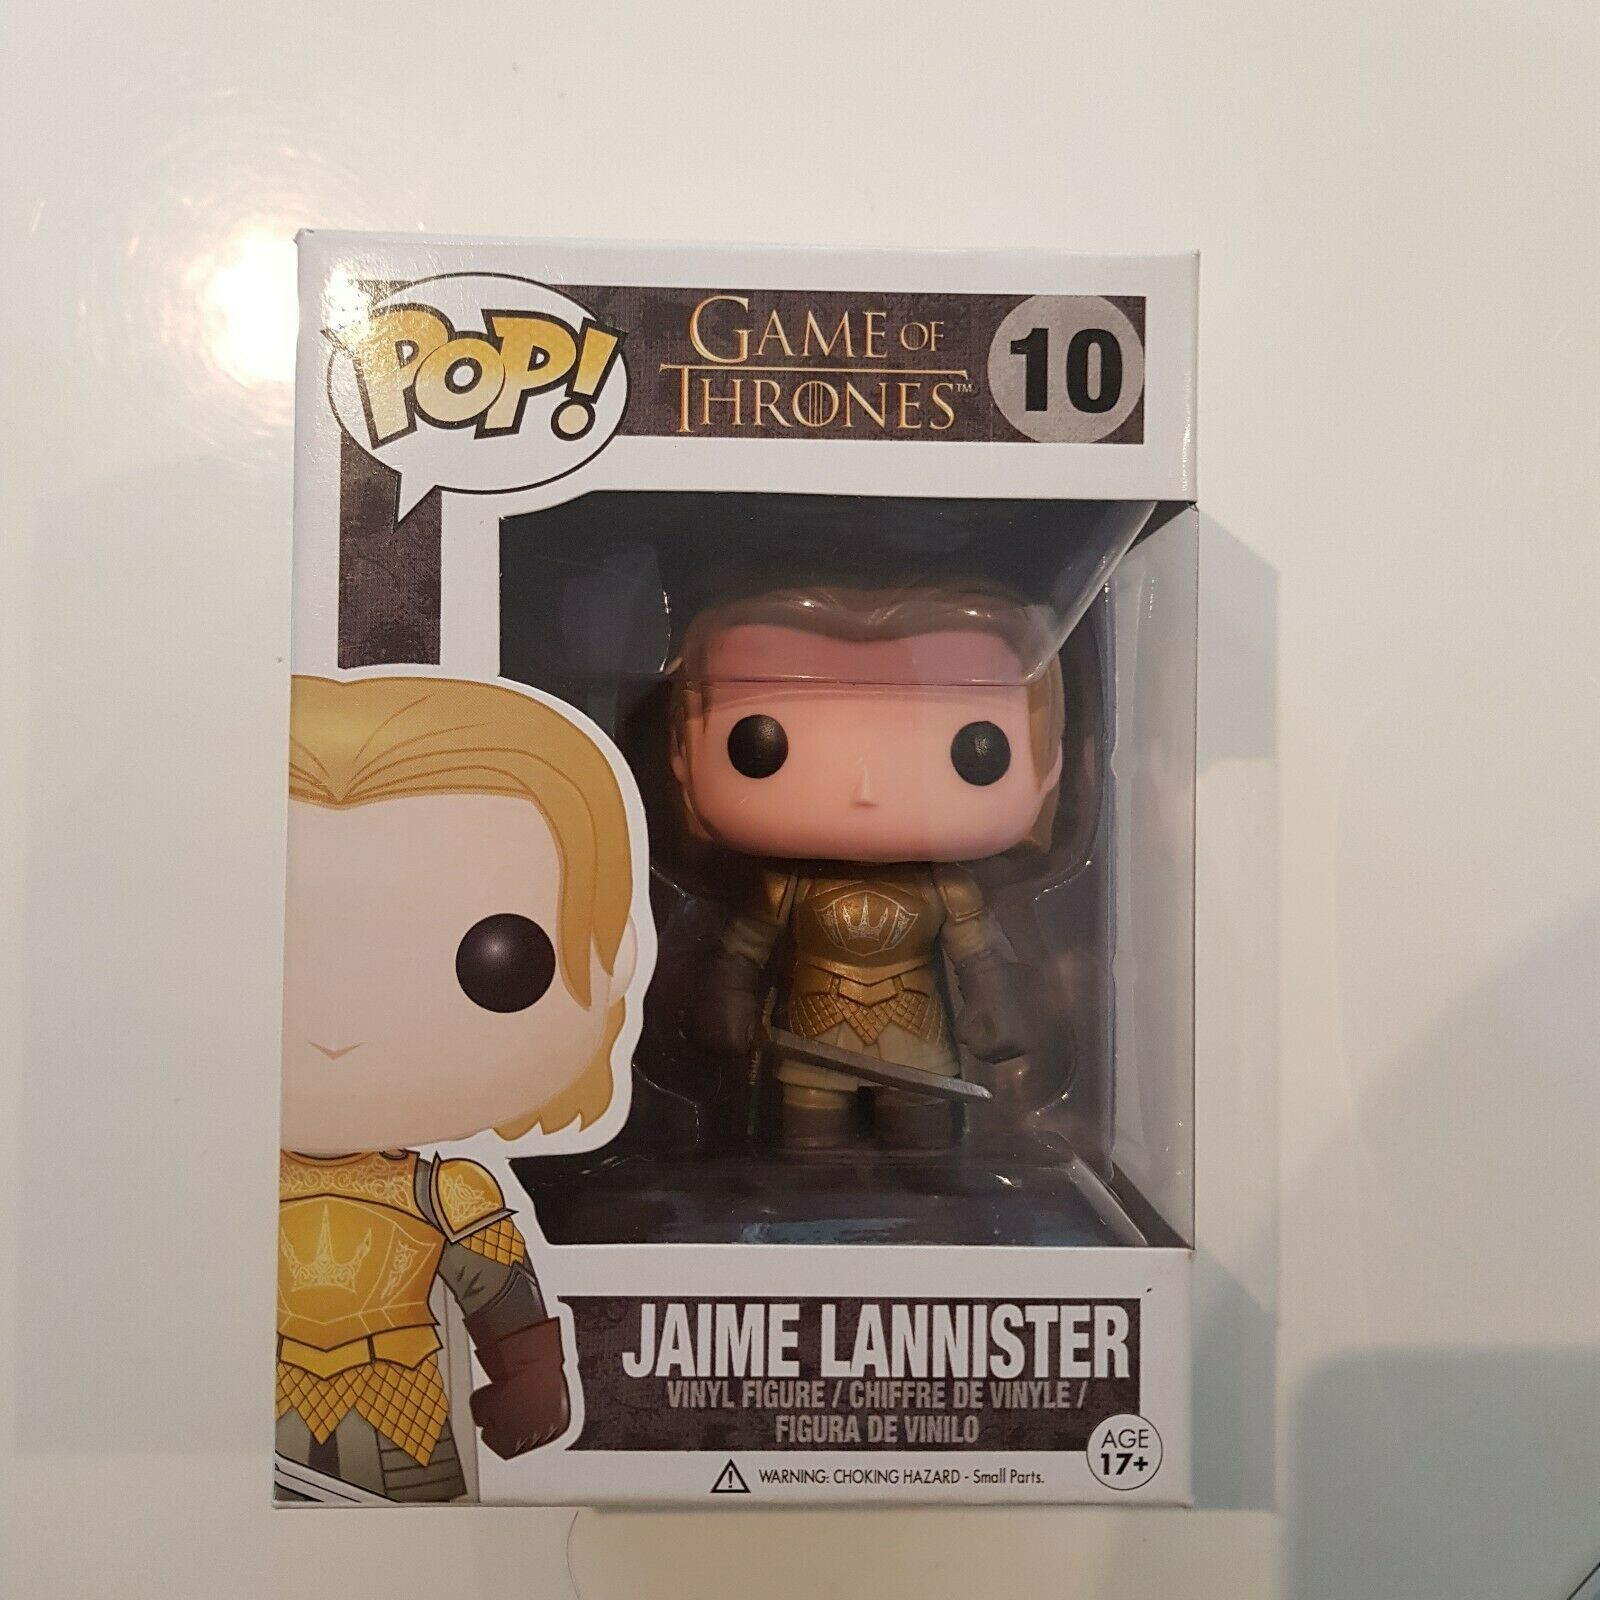 Rare Vaulted Game of Thrones Jaime Lannister funko pop vinyl